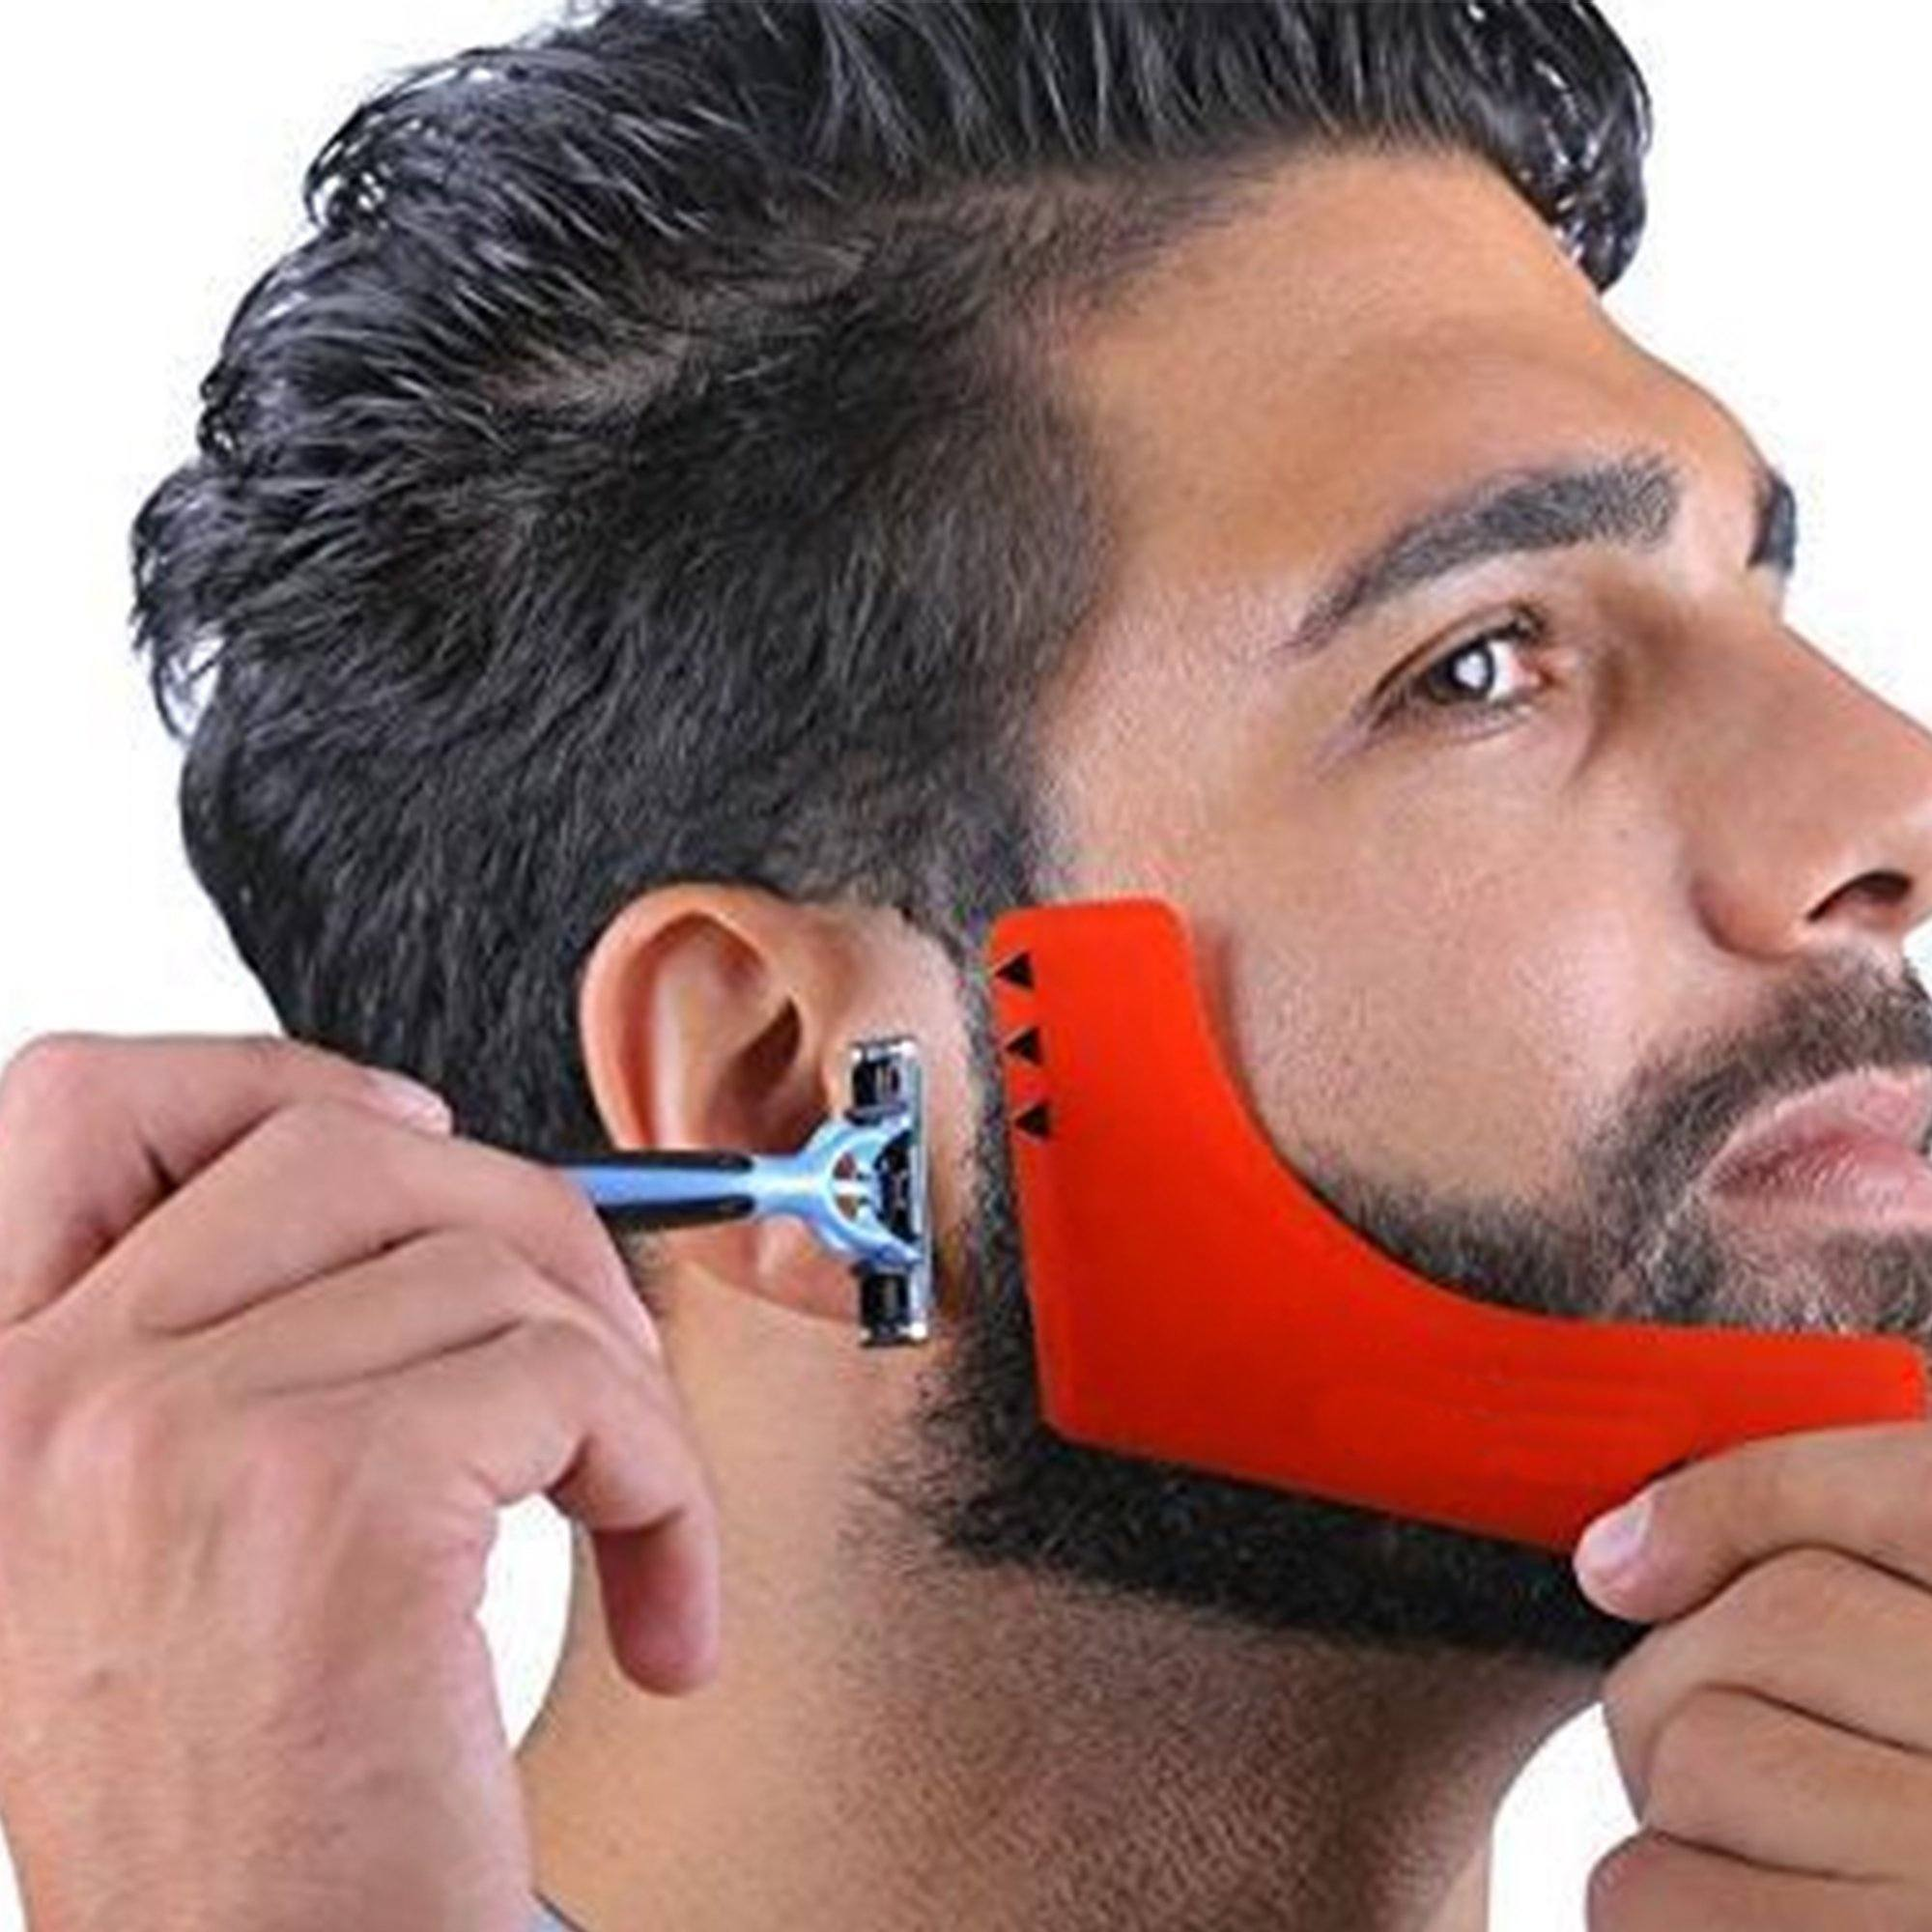 Guided Beard Shape Trimming Stencil (2 pieces)